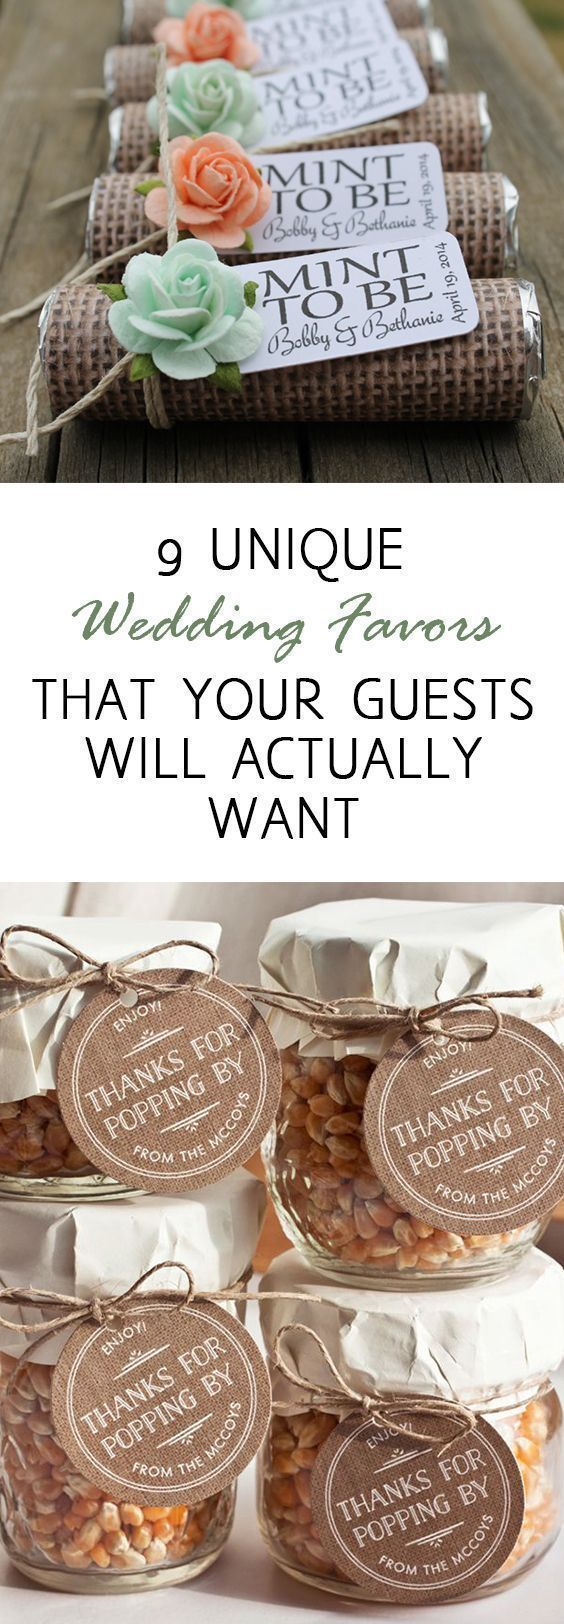 66 best Wedding Ideas images on Pinterest   Table decorations ...